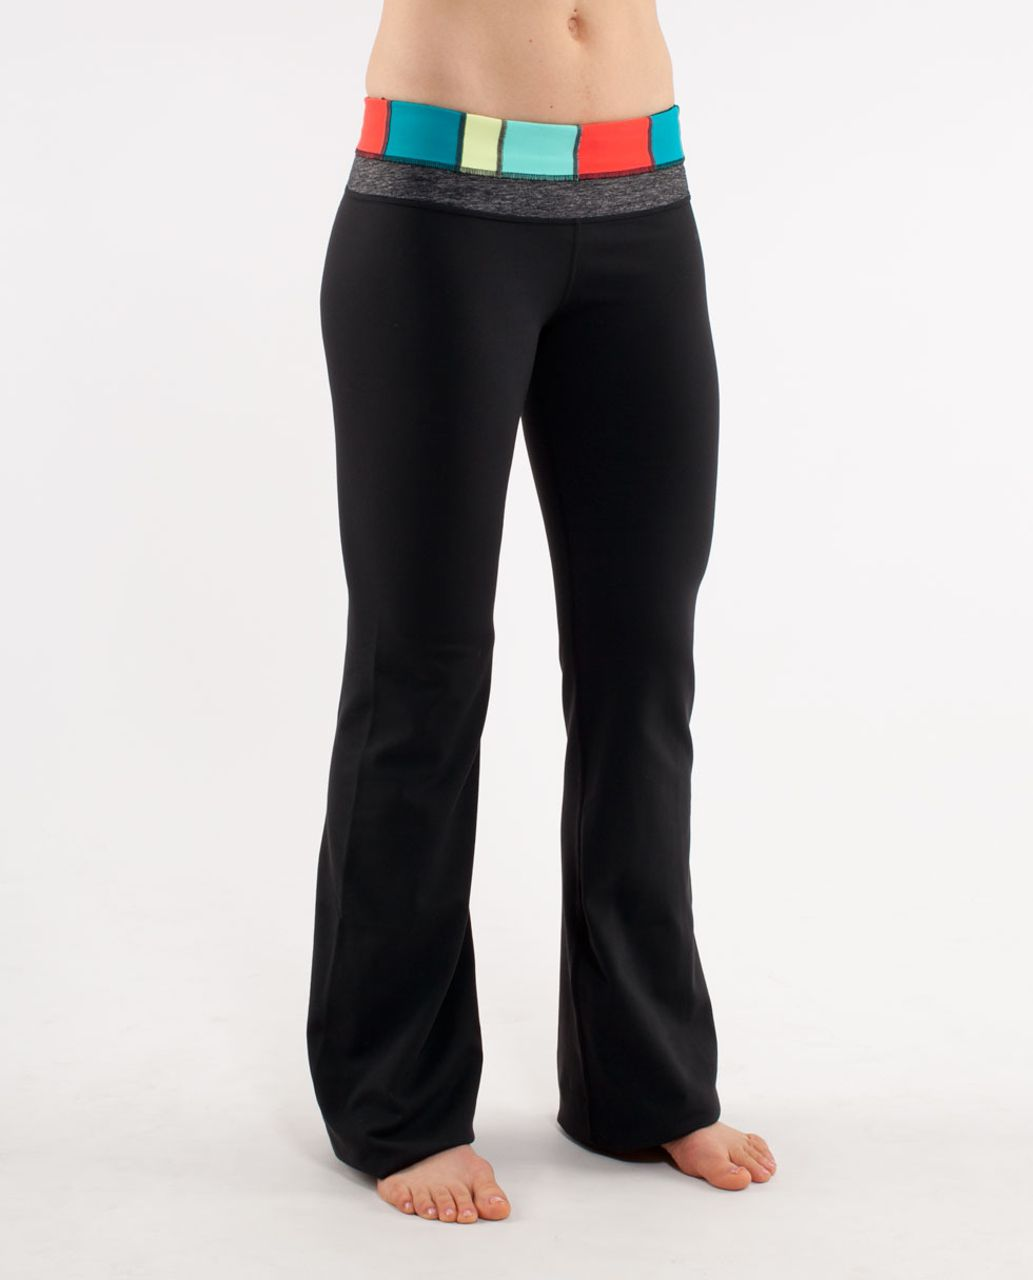 Lululemon Groove Pant (Tall) - Black /  Quilt Fall 1